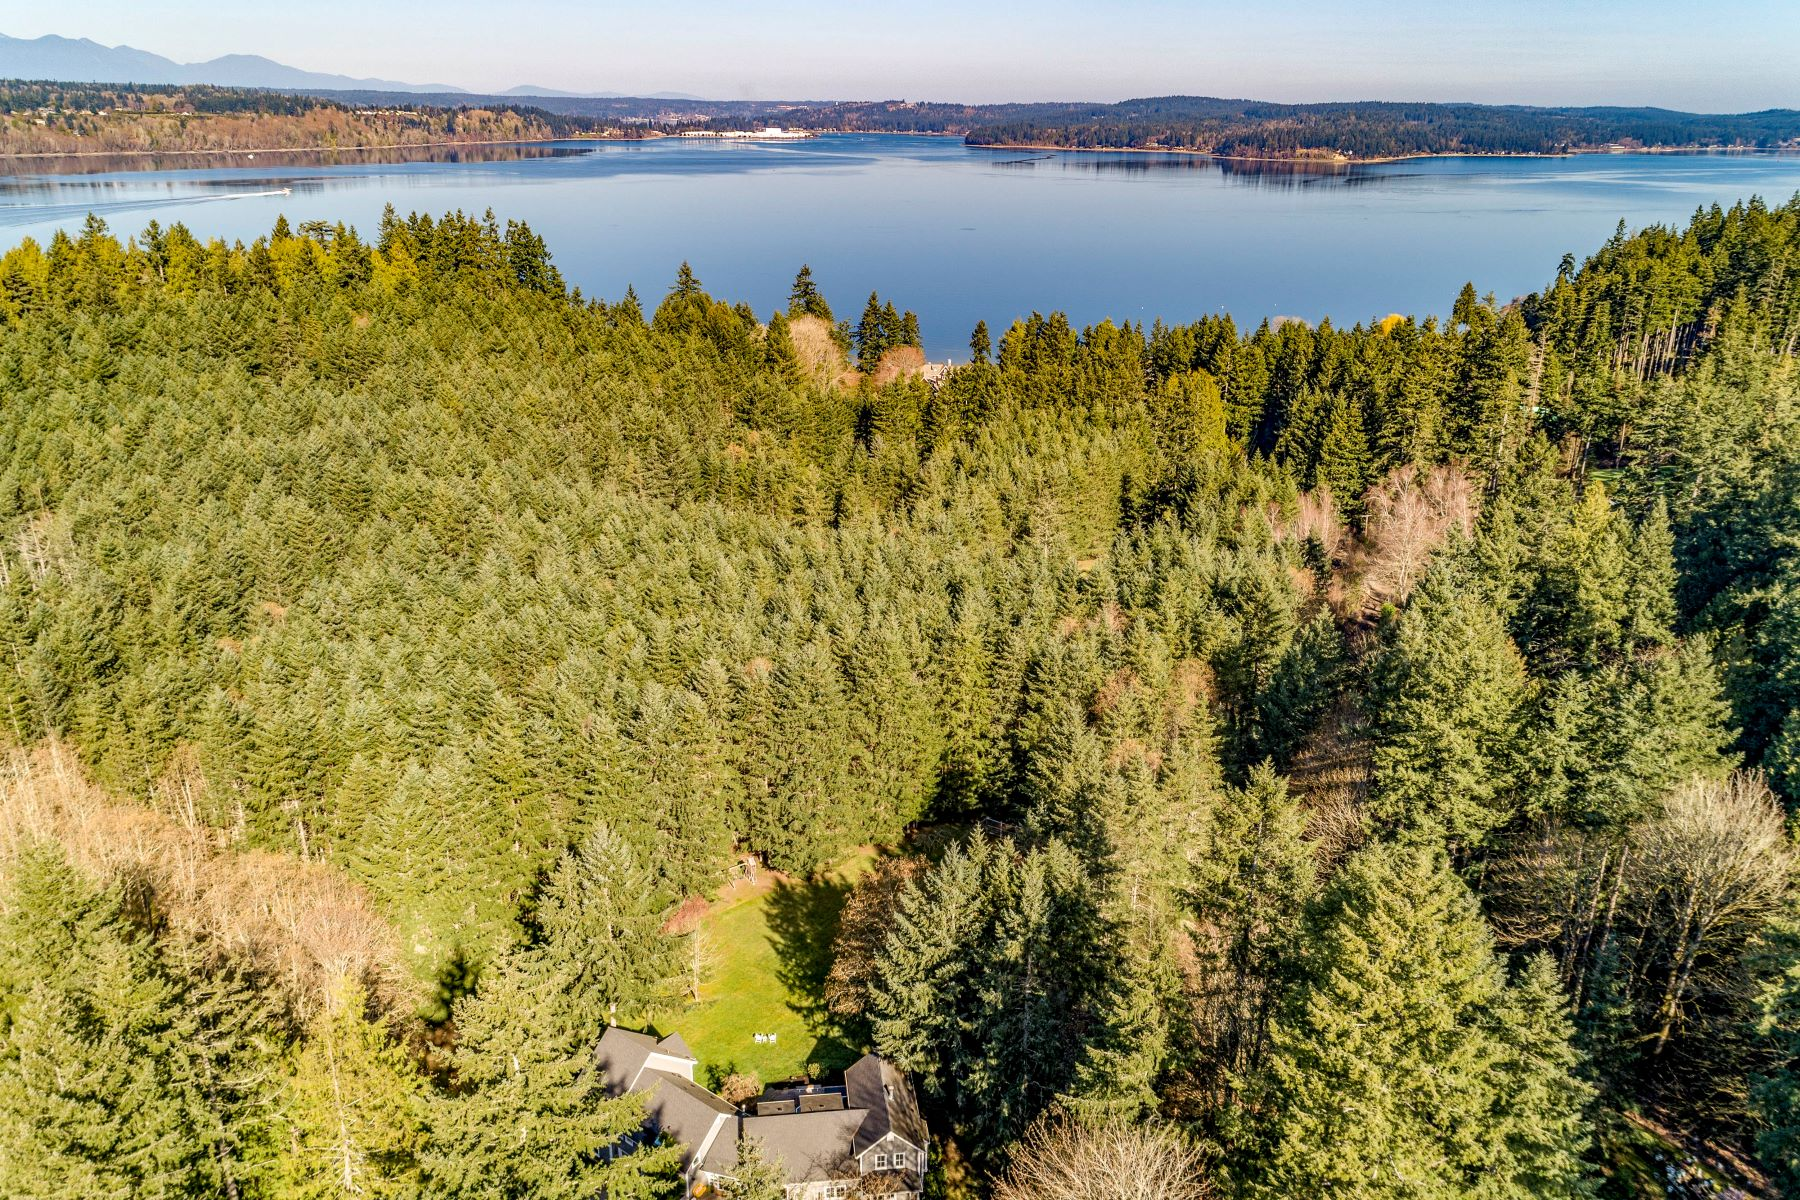 Single Family Homes for Sale at 4480 North Tolo Rd NE, Bainbridge Island, WA 98110 4480 North Tolo Rd NE Bainbridge Island, Washington 98110 United States